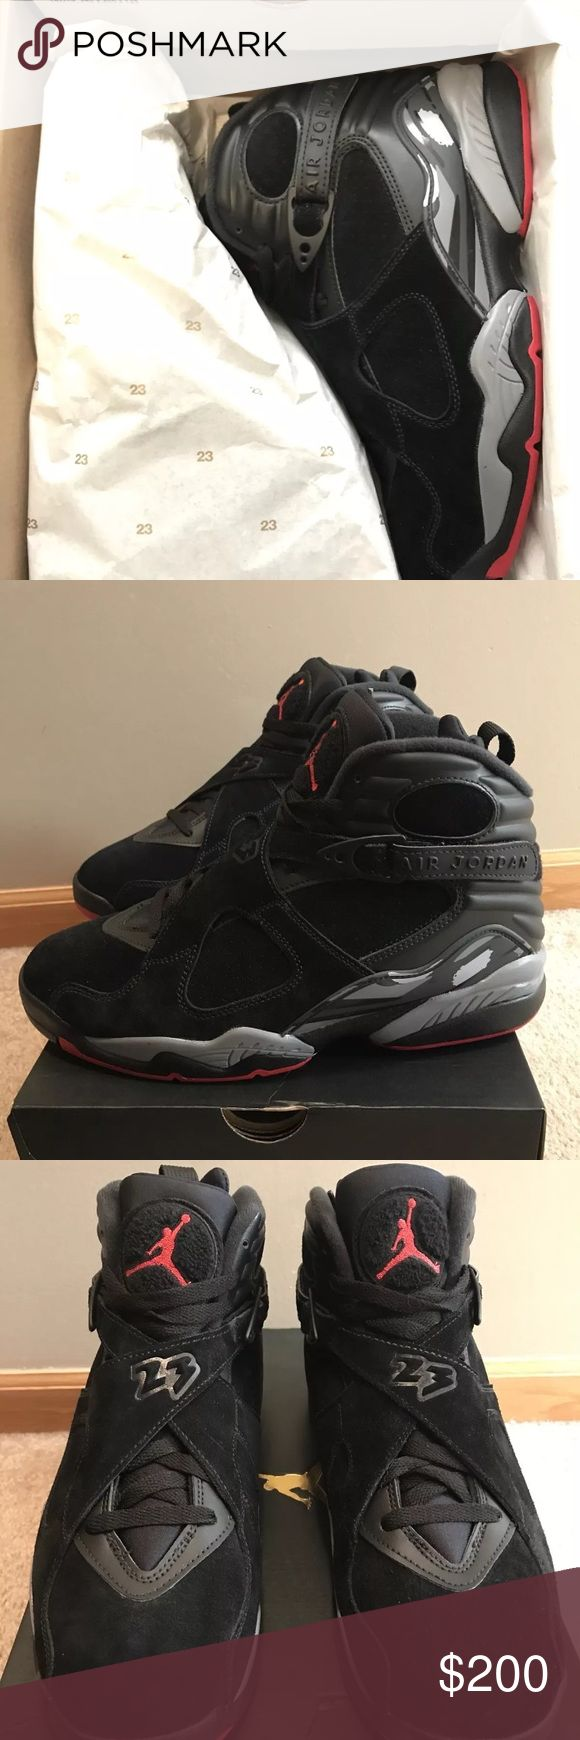 Nike Air Jordan VIII Retro 8 Cement 2017 OG BRED Worn once, in good condition  Size 9  100% Authenic Comes With Box Jordan Shoes Sneakers